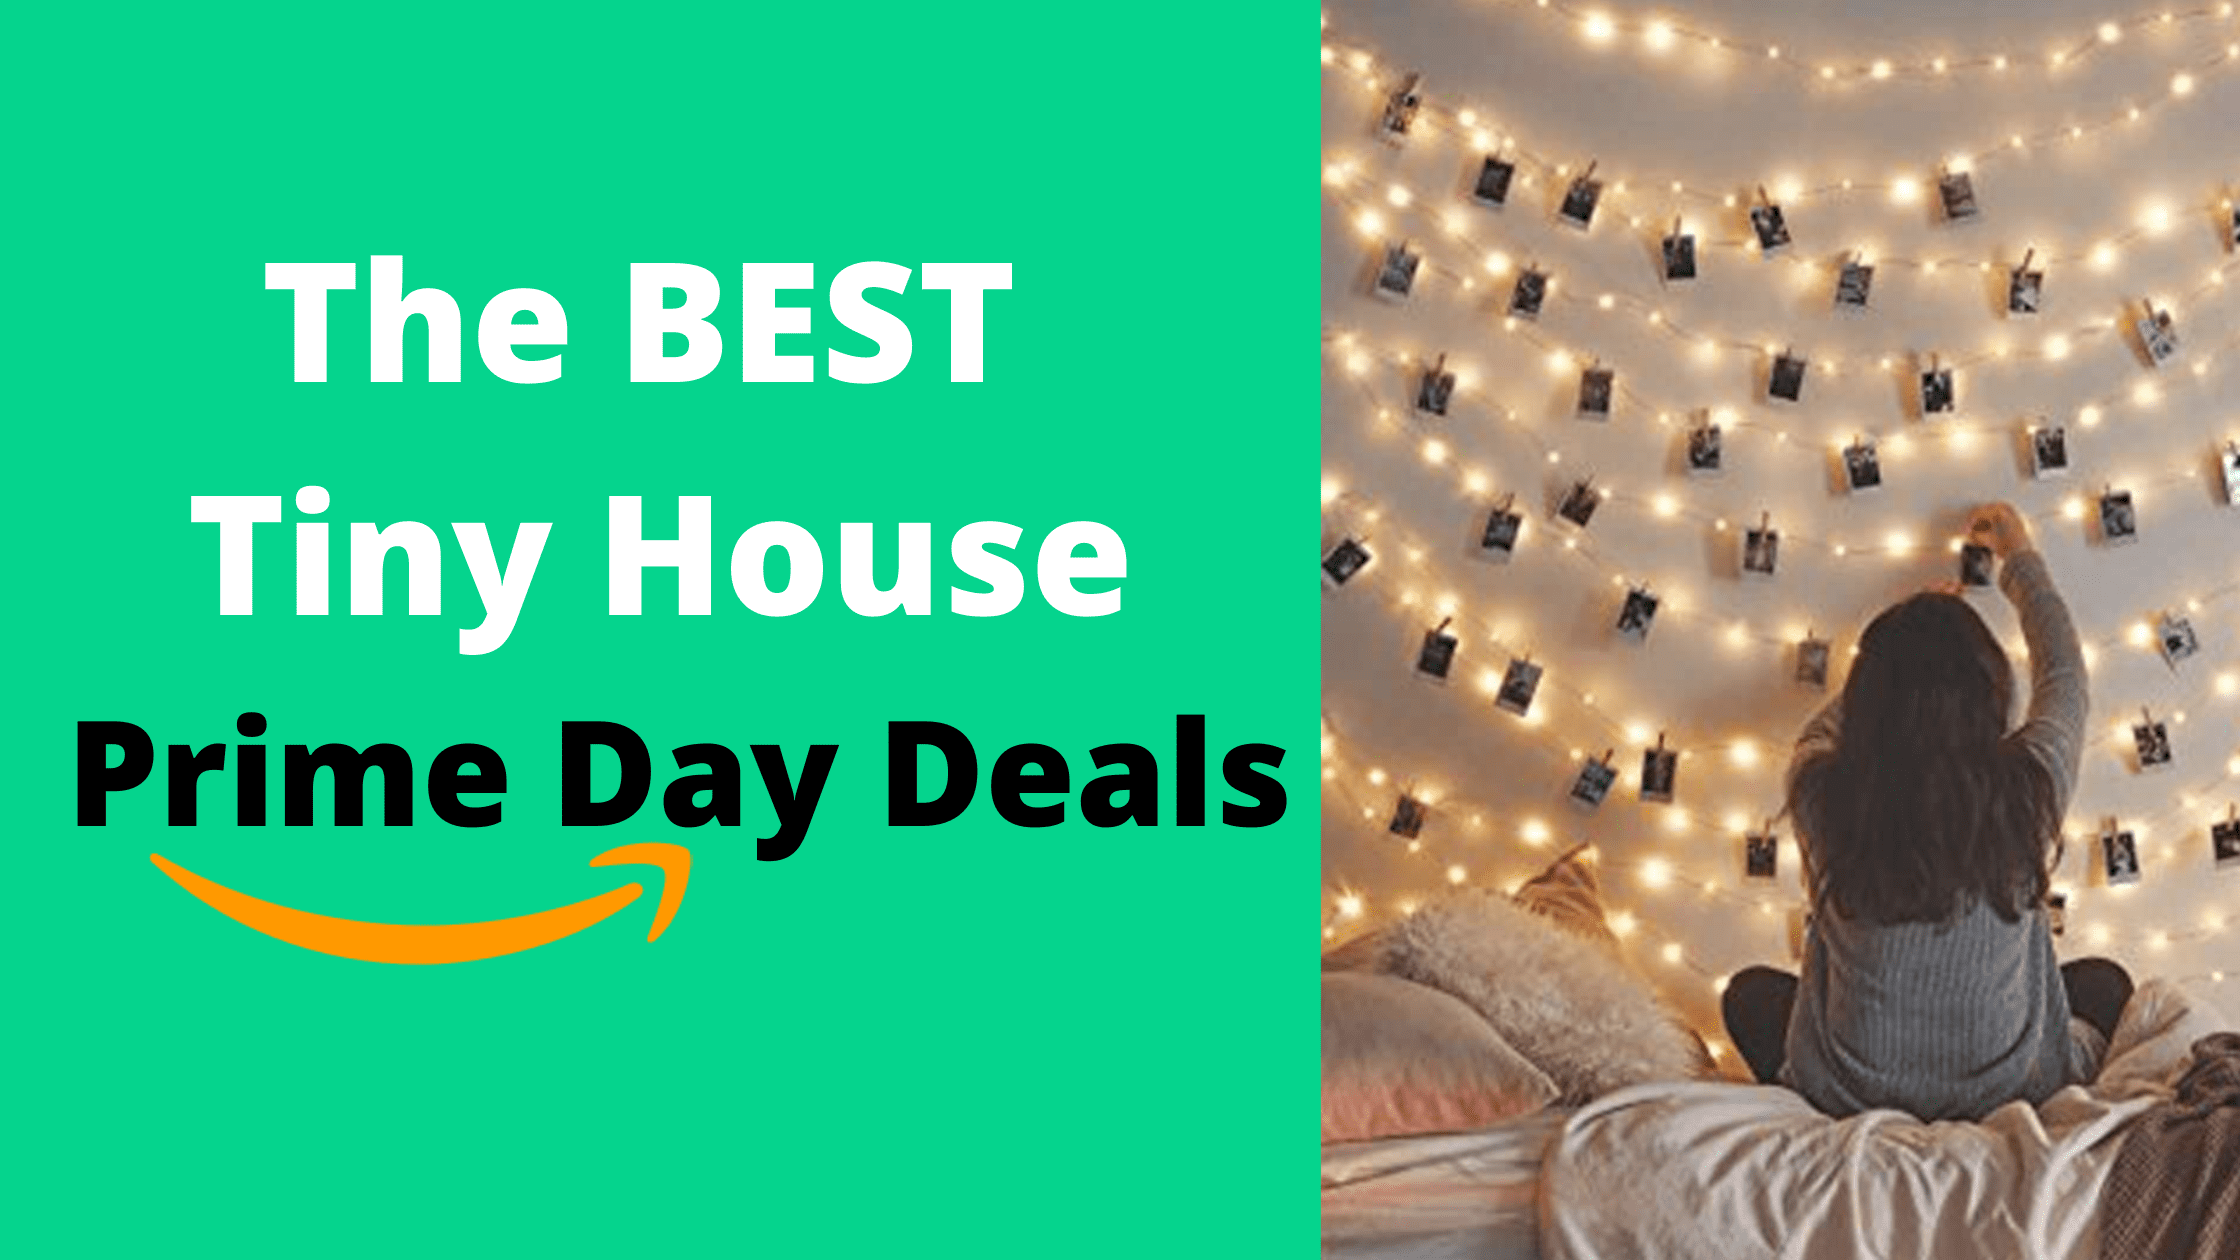 Tiny House Prime Day